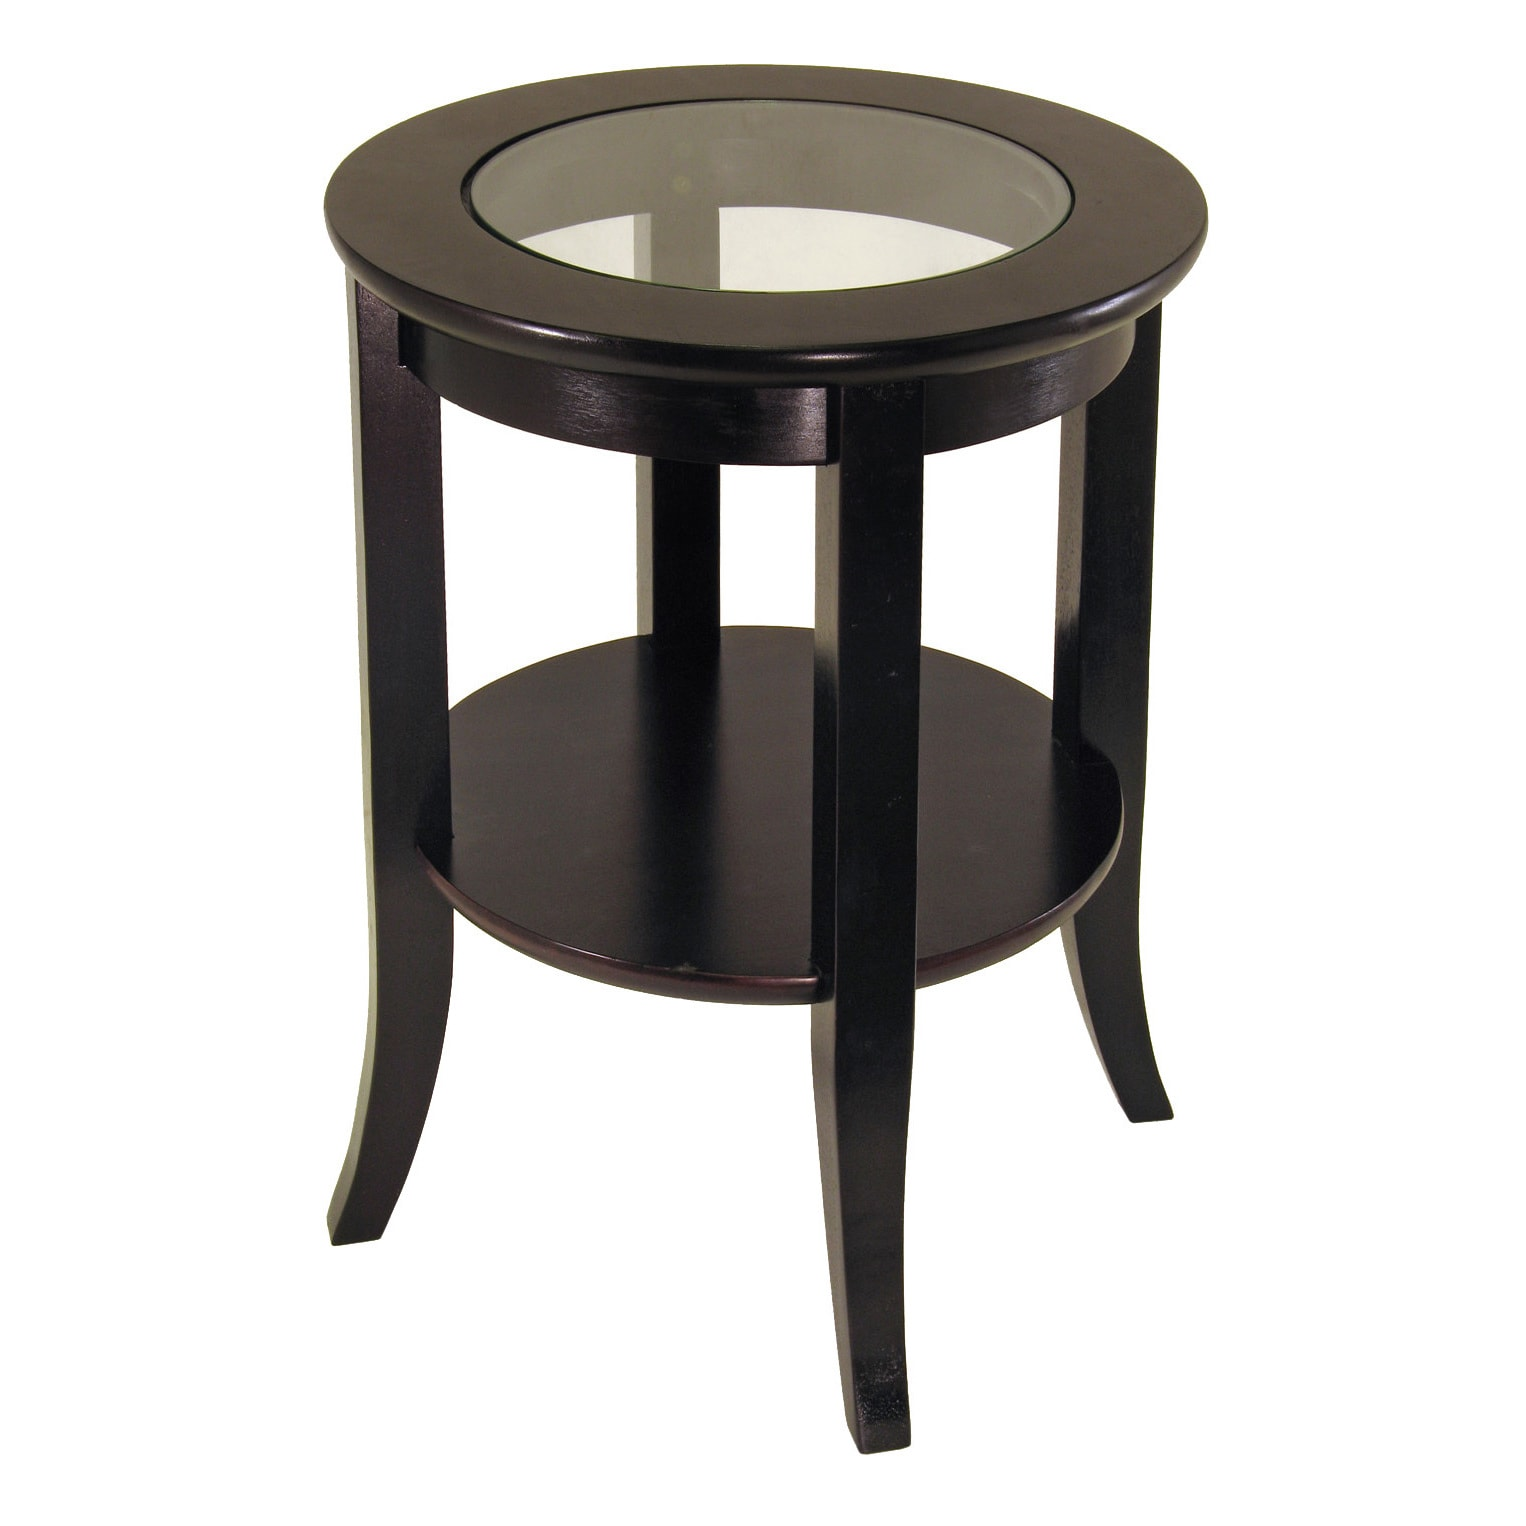 Winsome Genoa Glass Inset Round End Table with Flared Legs